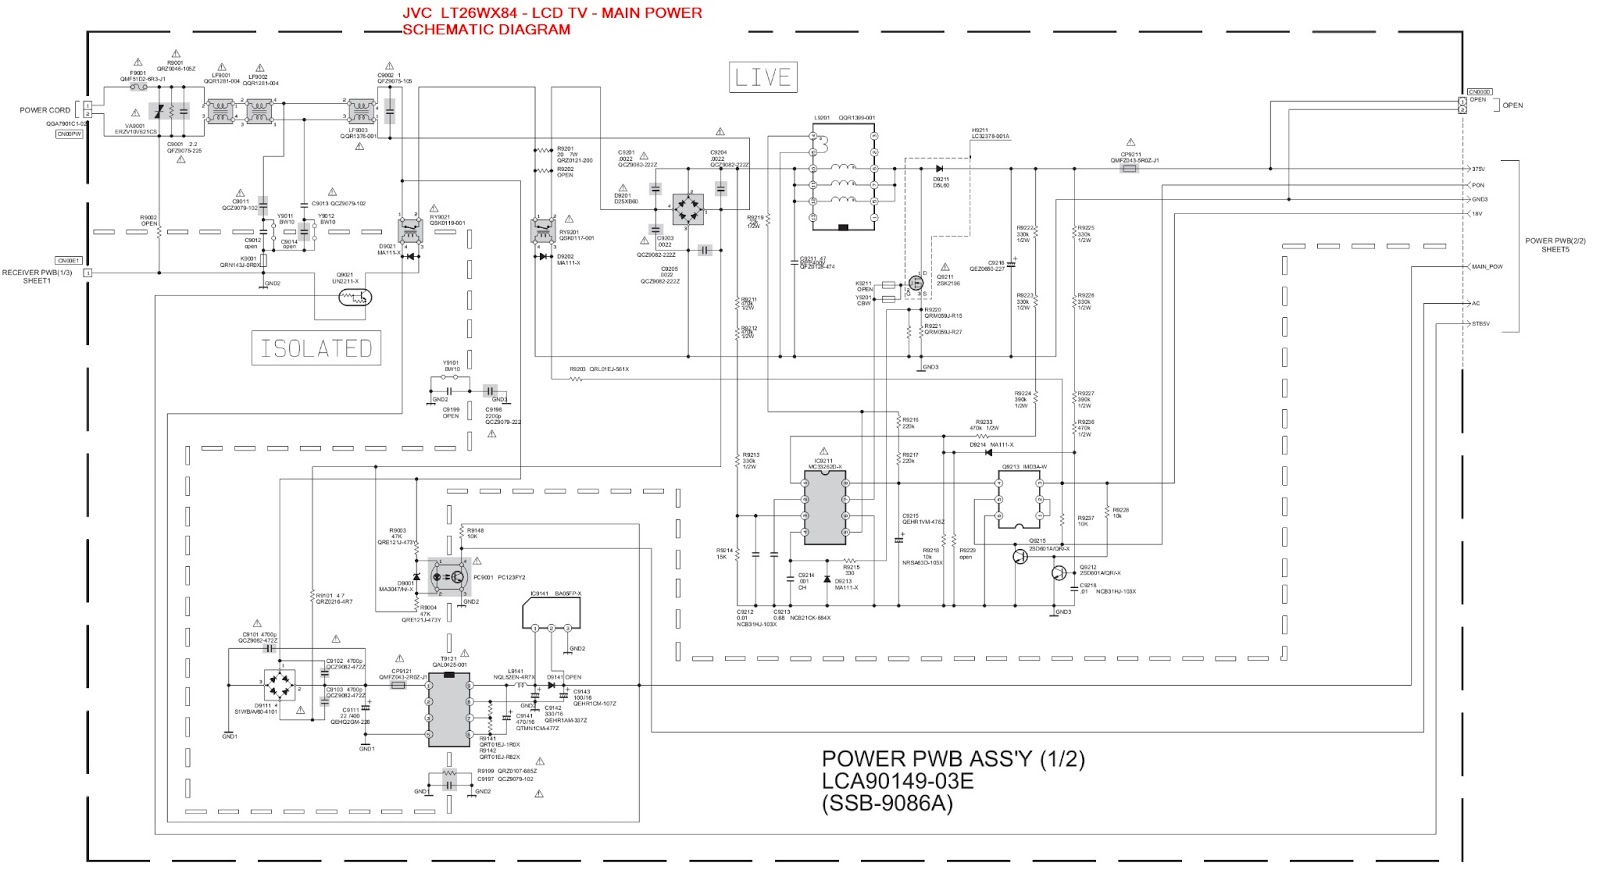 Circuit Diagram Jvc Tv Wiring Will Be A Thing Electronic Board Schematic Diagrams Lt 26wx84 Lcd Main Power Supply Rf Transmitter Parts